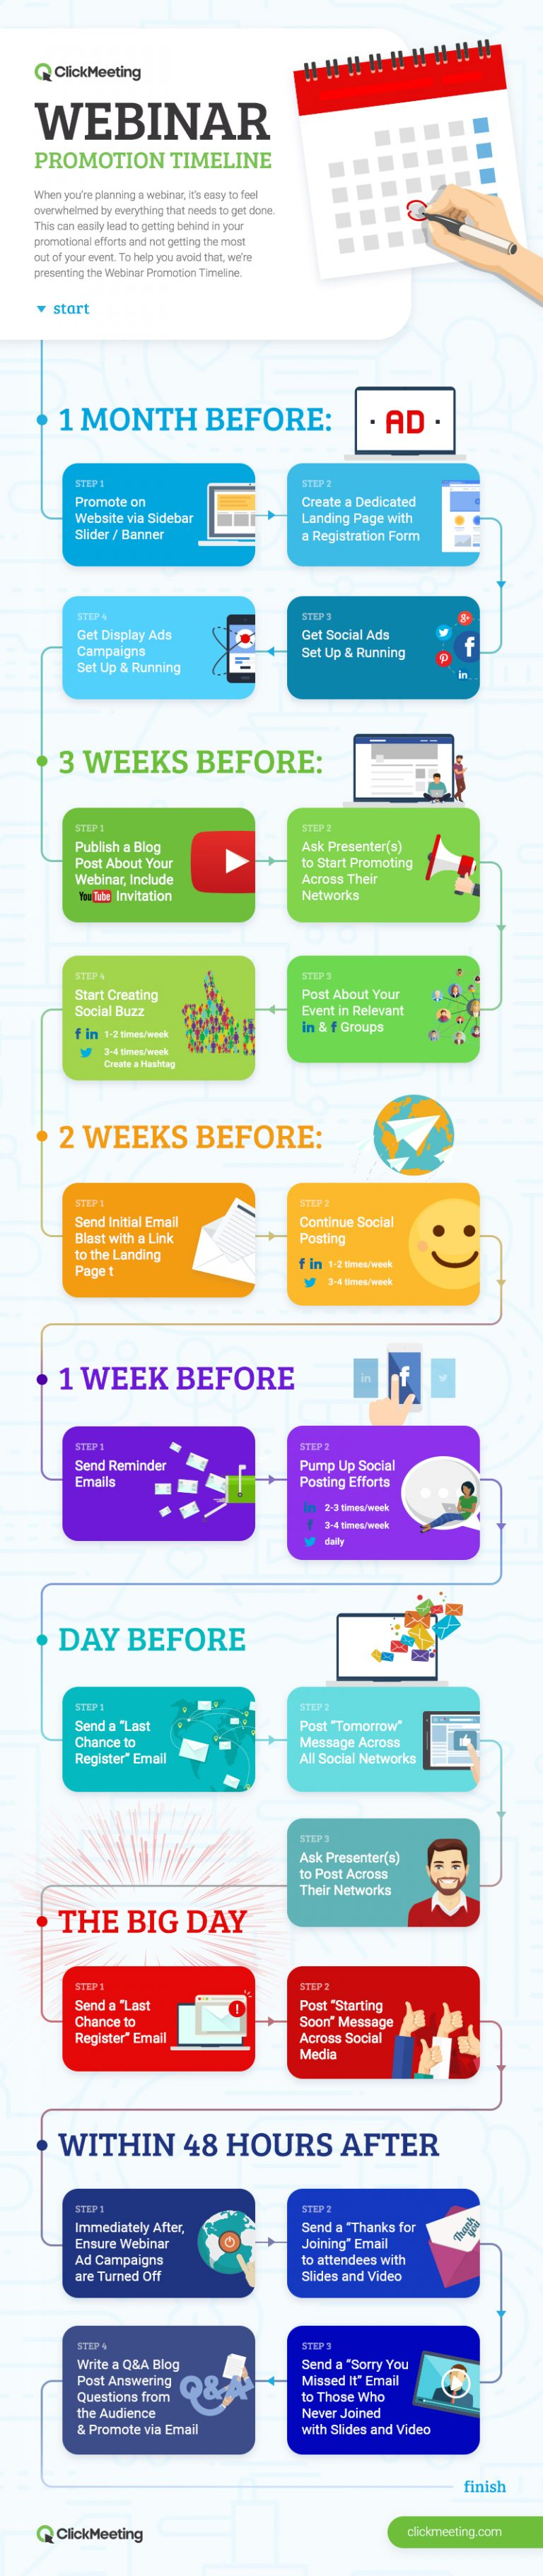 clickmeeting_webinar_promotion_timeline_infographic